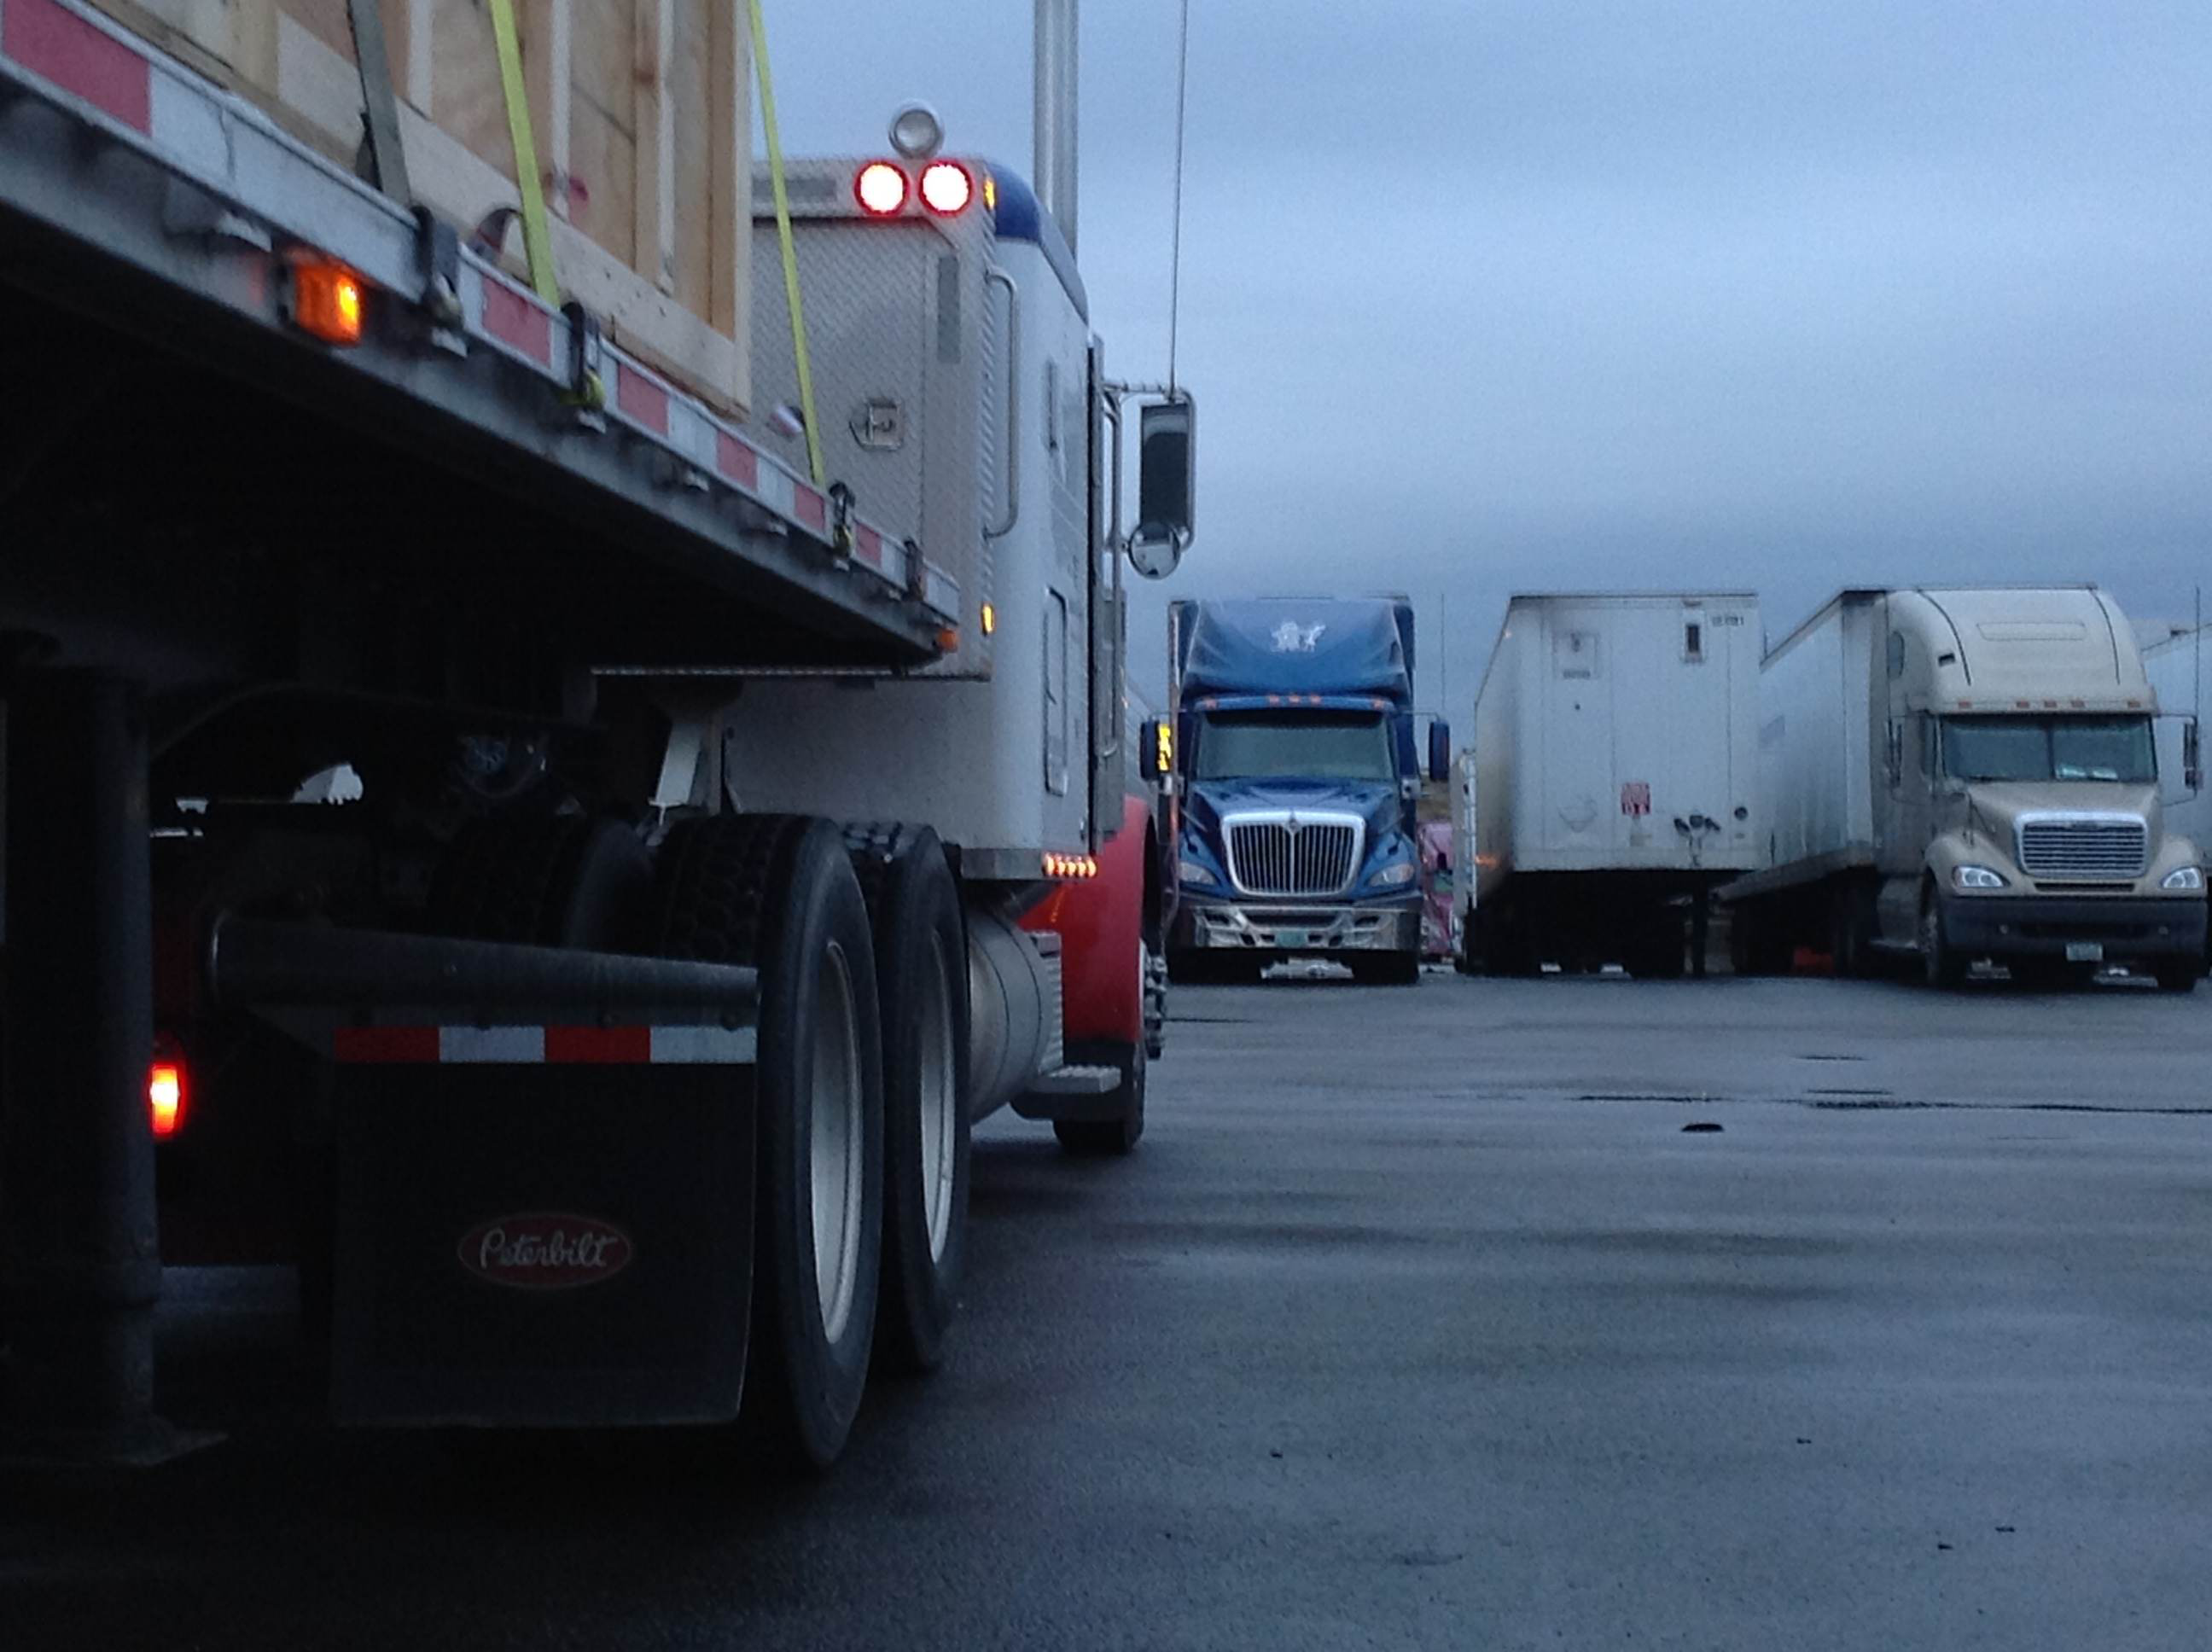 'All the money in the world' may not be enough to solve trucking's parking crisis, panelists say